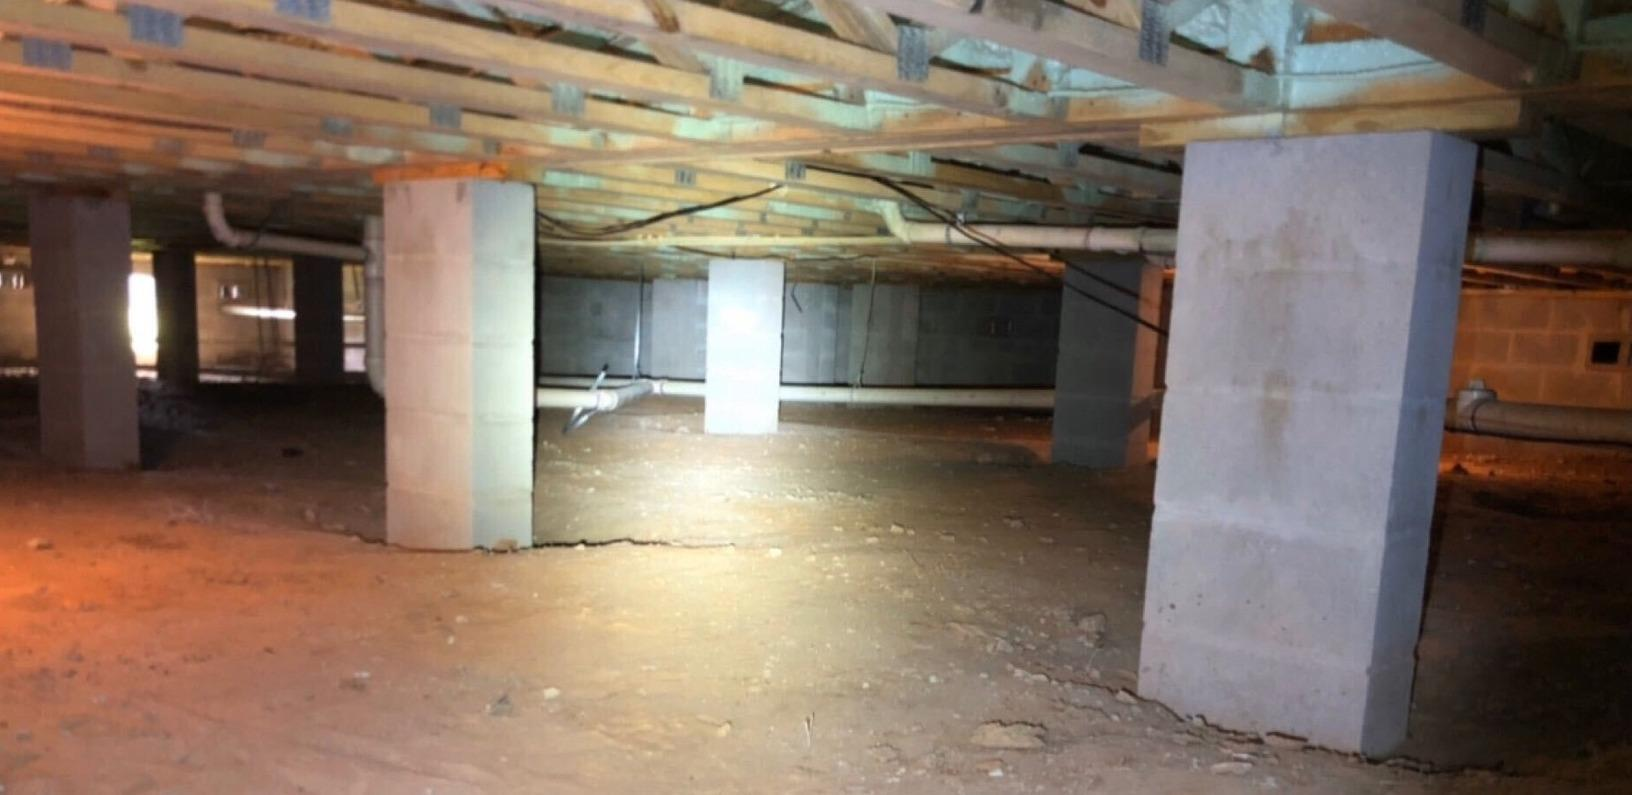 Crawl Space Encapsulation in Tallahassee, FL - Before Photo